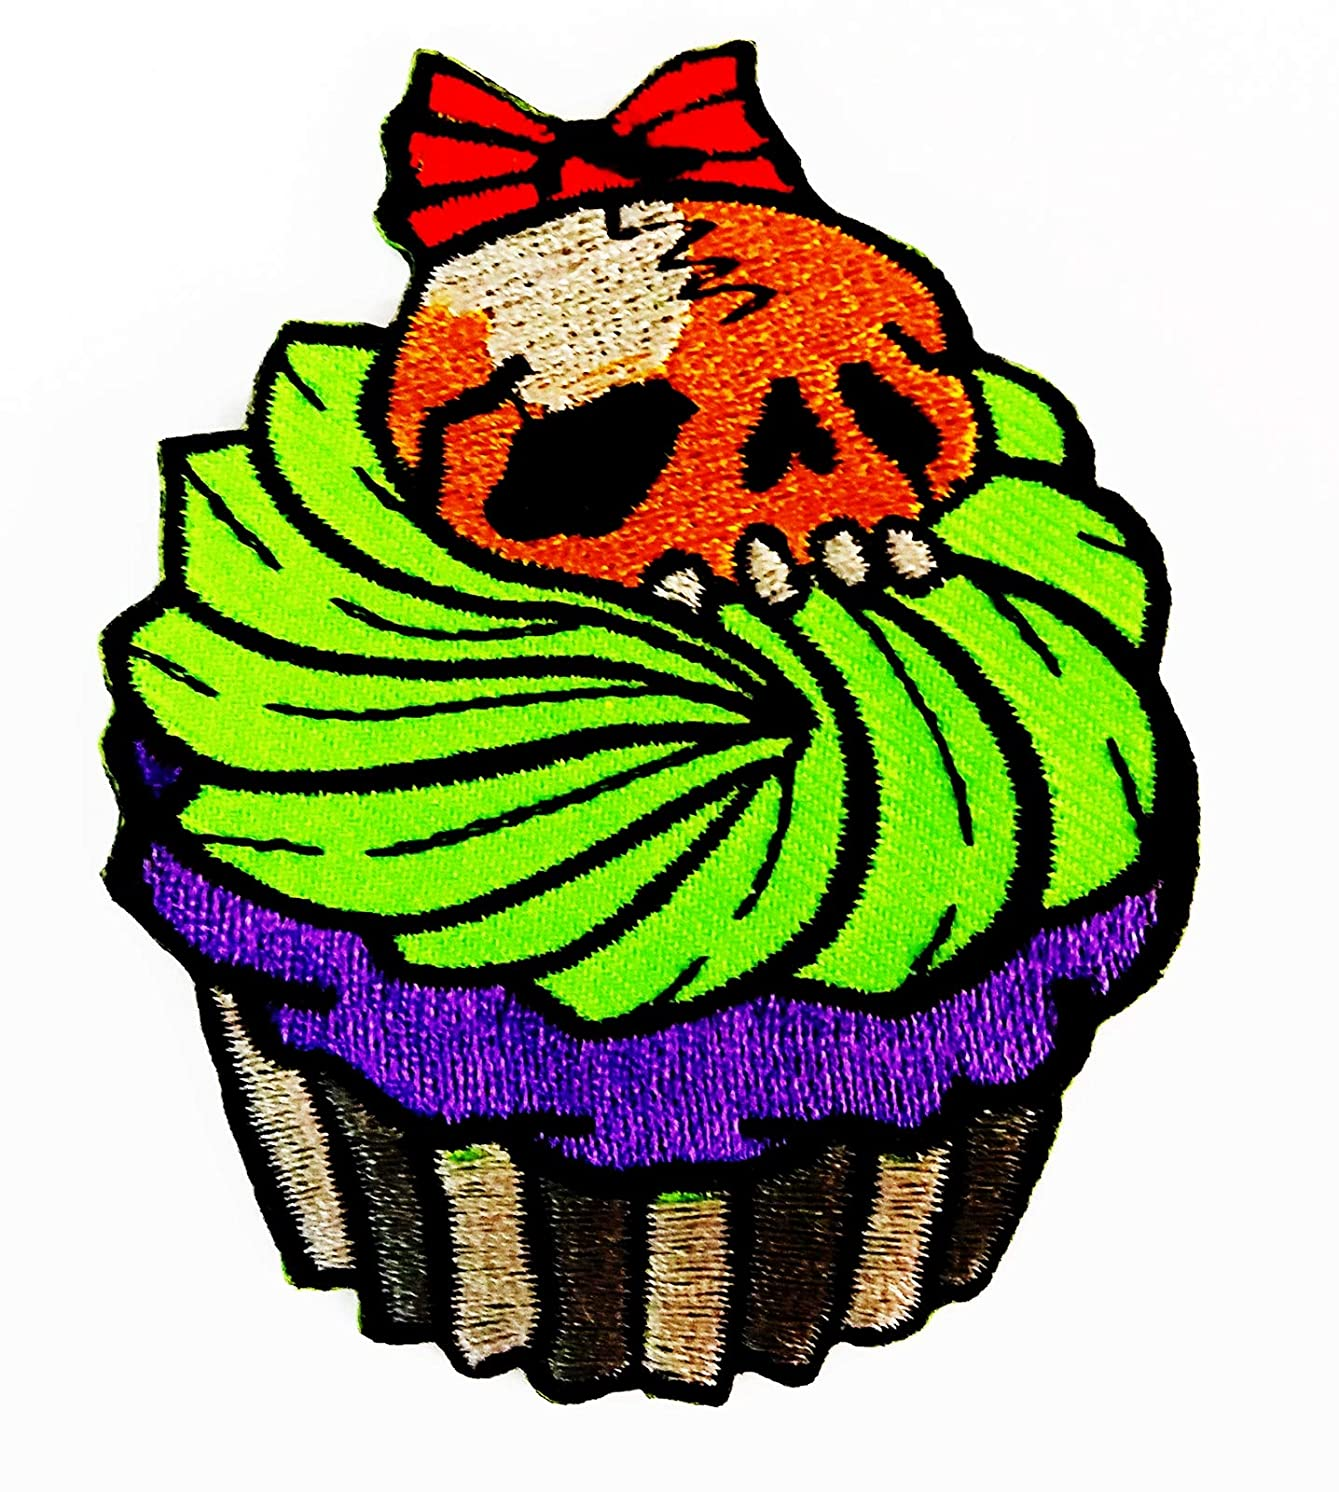 Cupcake Cartoon Halloween Skull Head Bakery Cake 2.5X3 in MEGADEE Patch Embroidered Iron on Hat Jacket Hoodie Backpack Ideal for Gift (Cupcake Cake 022)